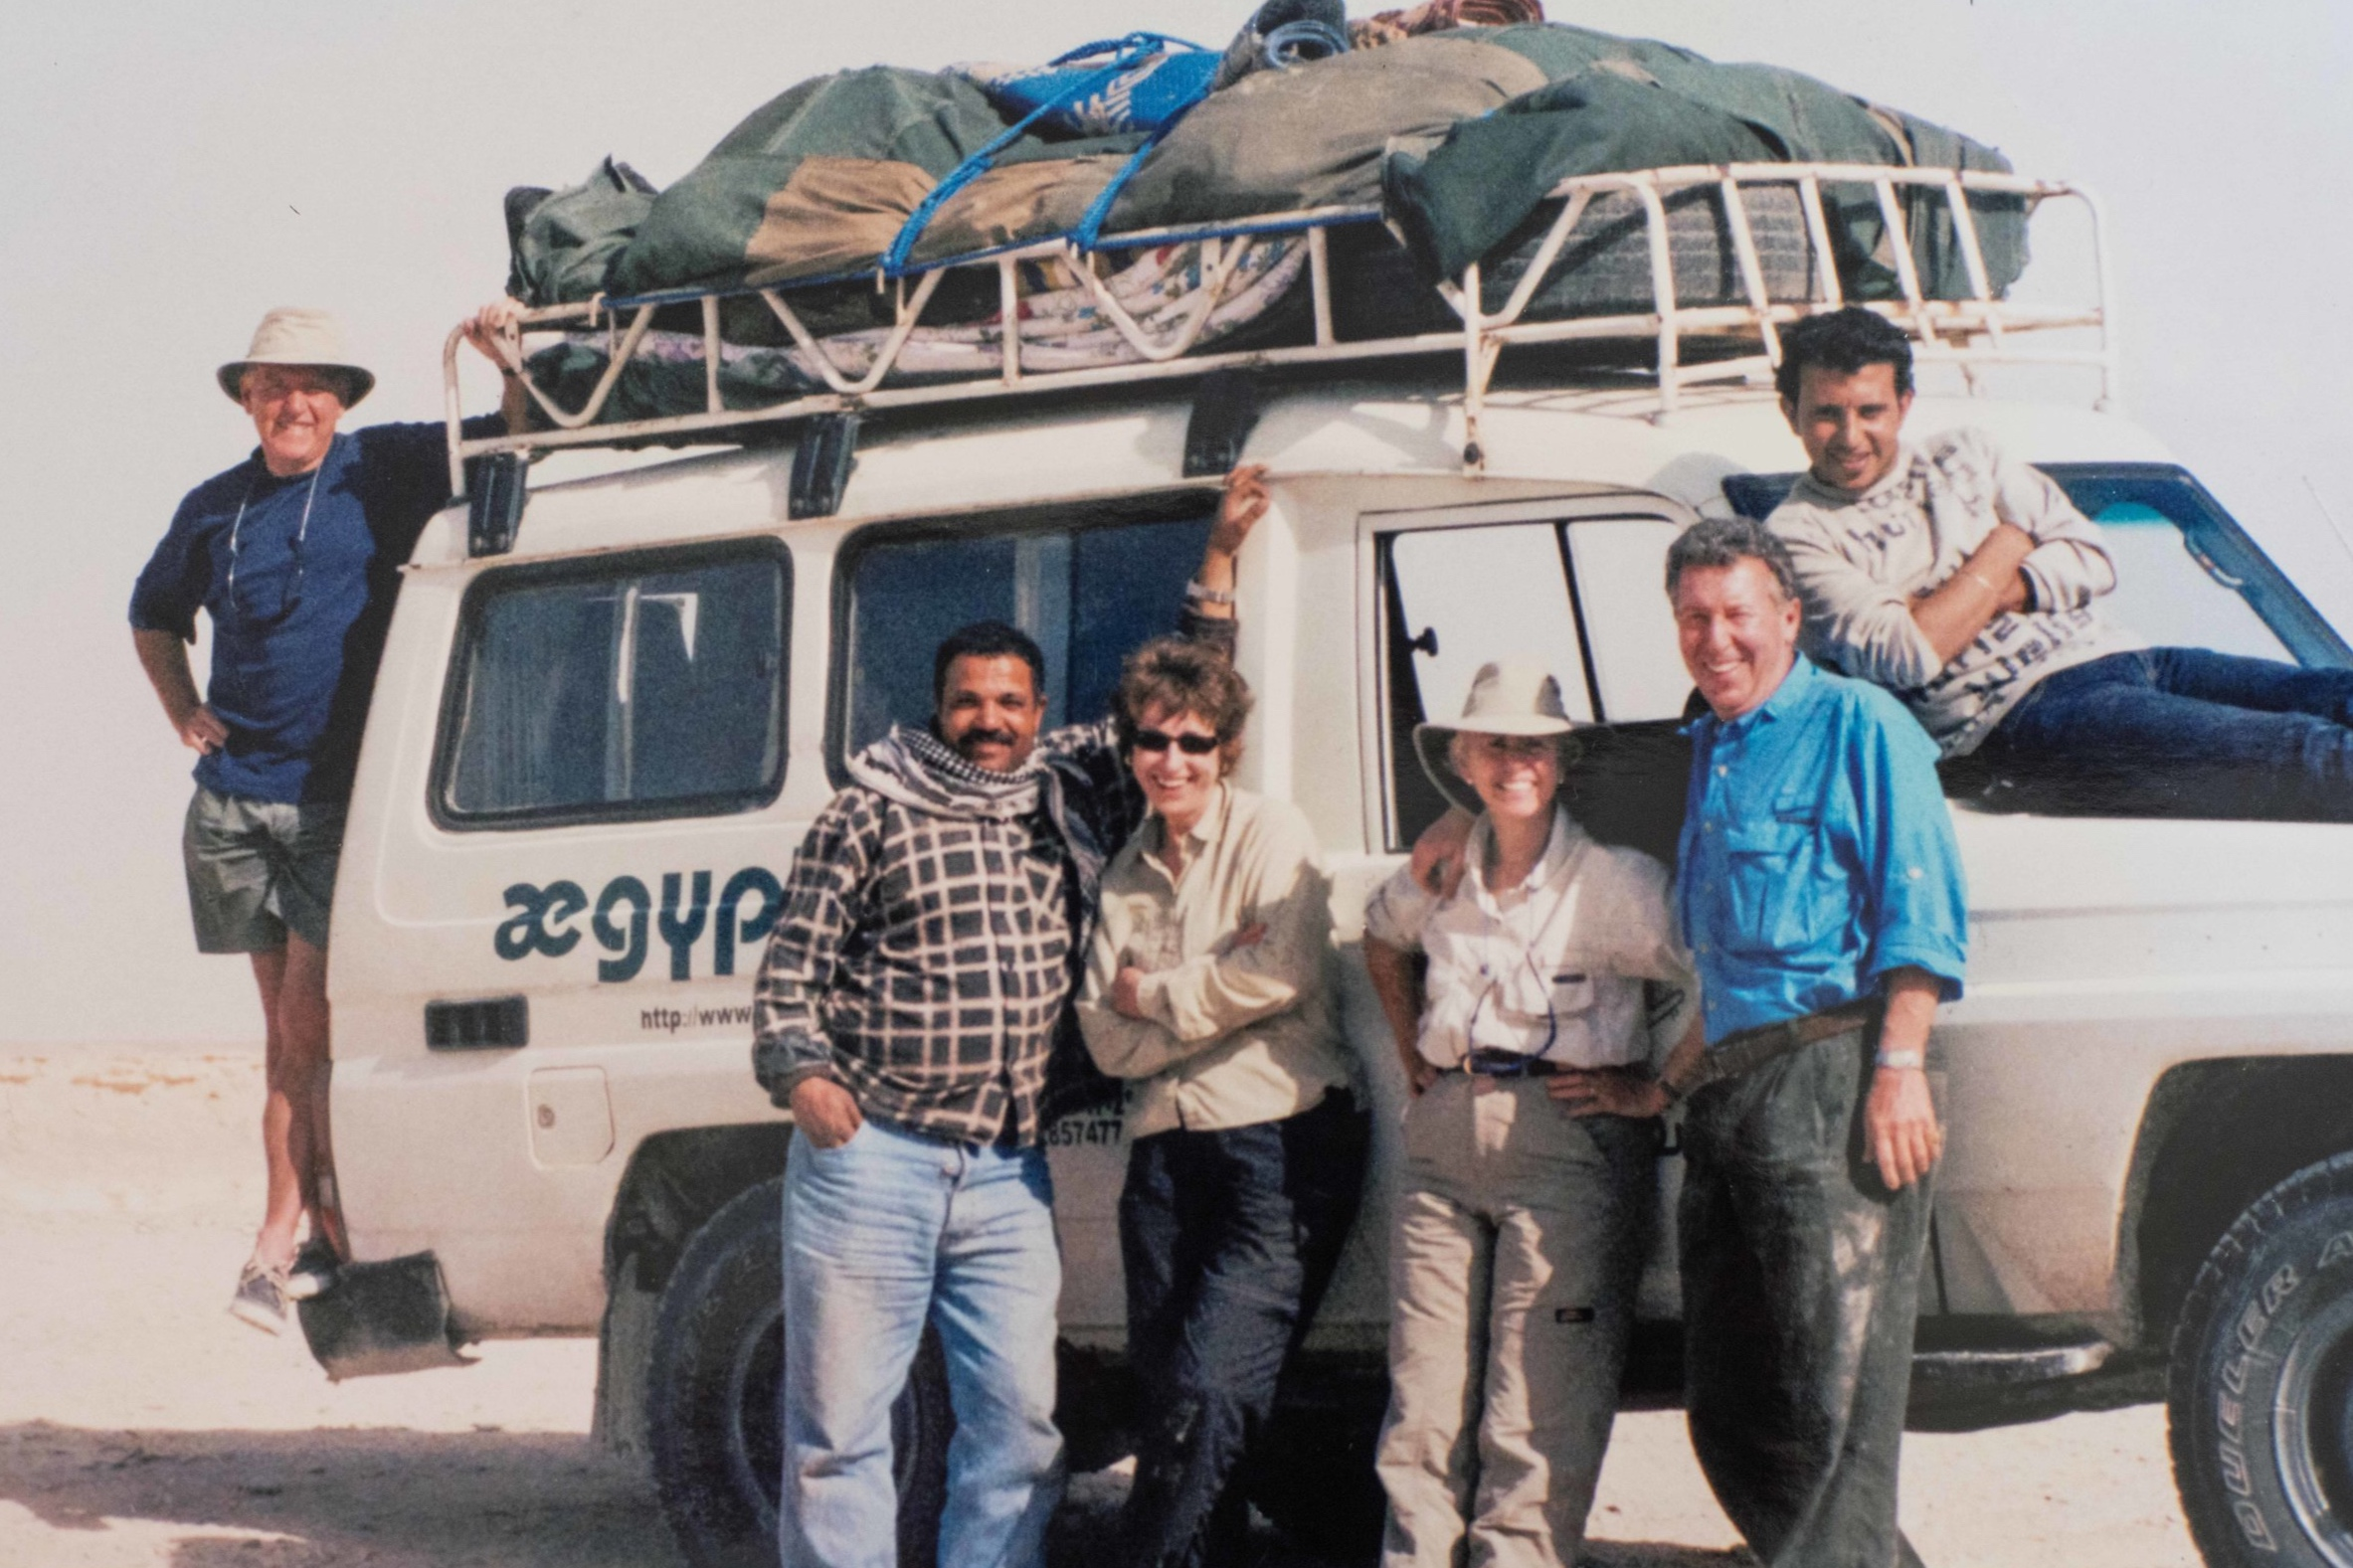 Lynne and Bill with friends on the Sinai in Egypt. Photo courtesy Lynne Kearns.